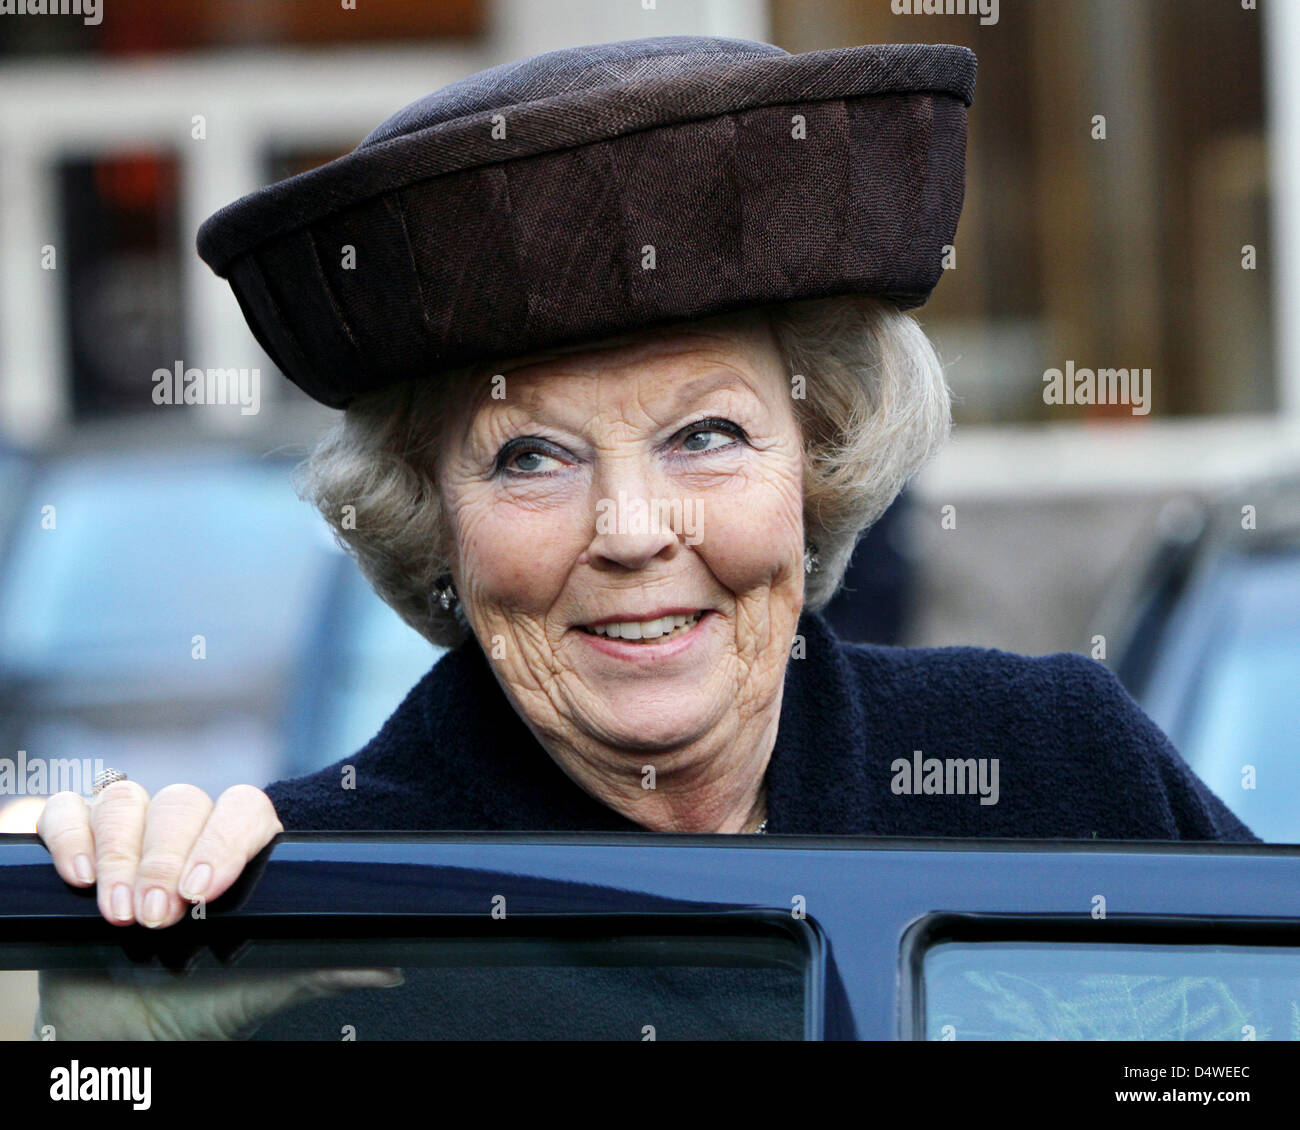 Queen Beatrix of the Netherlands attends the congress 'Resilience and Confidence' of the Social Economic Council Stock Photo